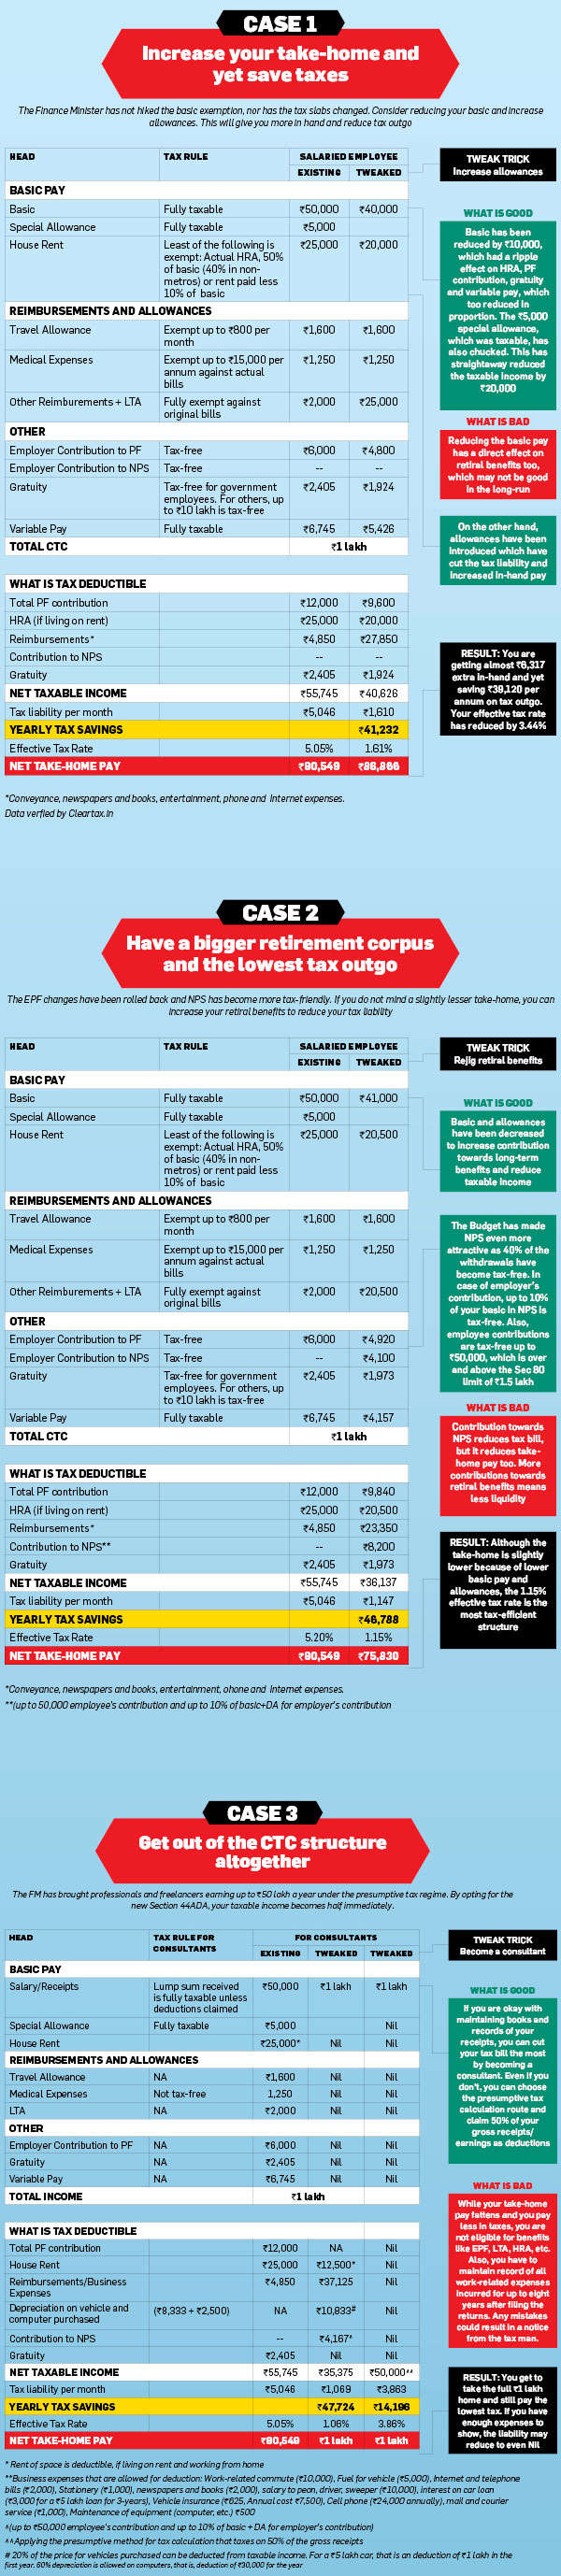 How to restructure your salary to pay less tax in FY 2016-17